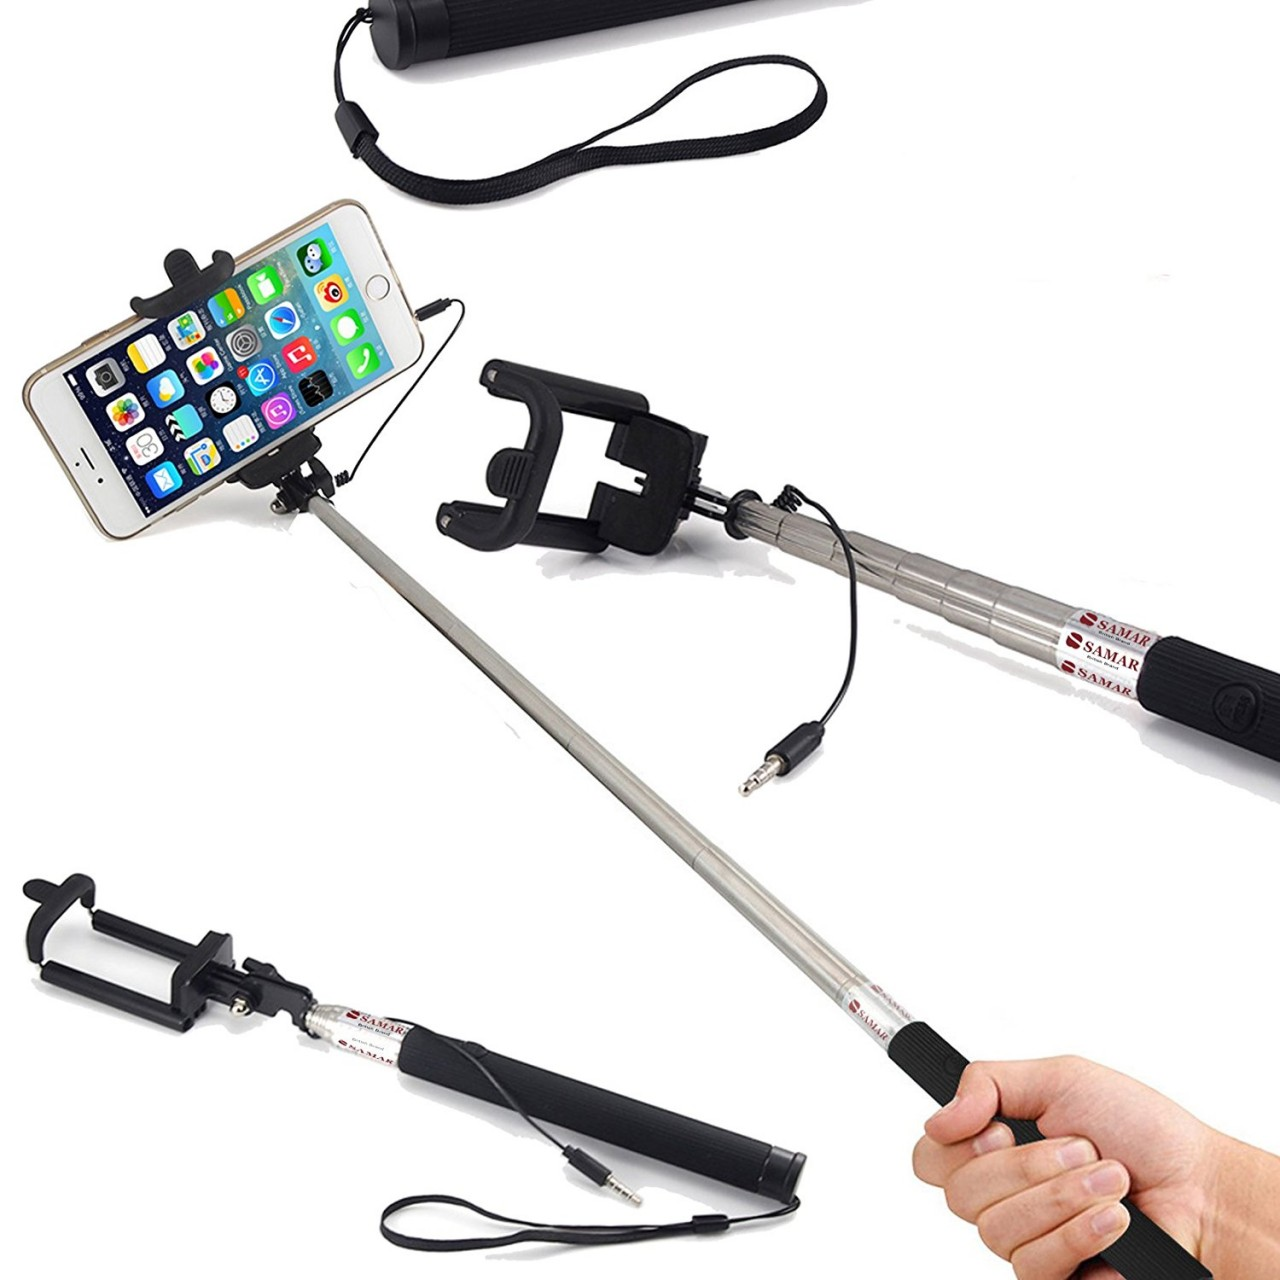 samar selfie stick with builtin remote price in pakistan. Black Bedroom Furniture Sets. Home Design Ideas